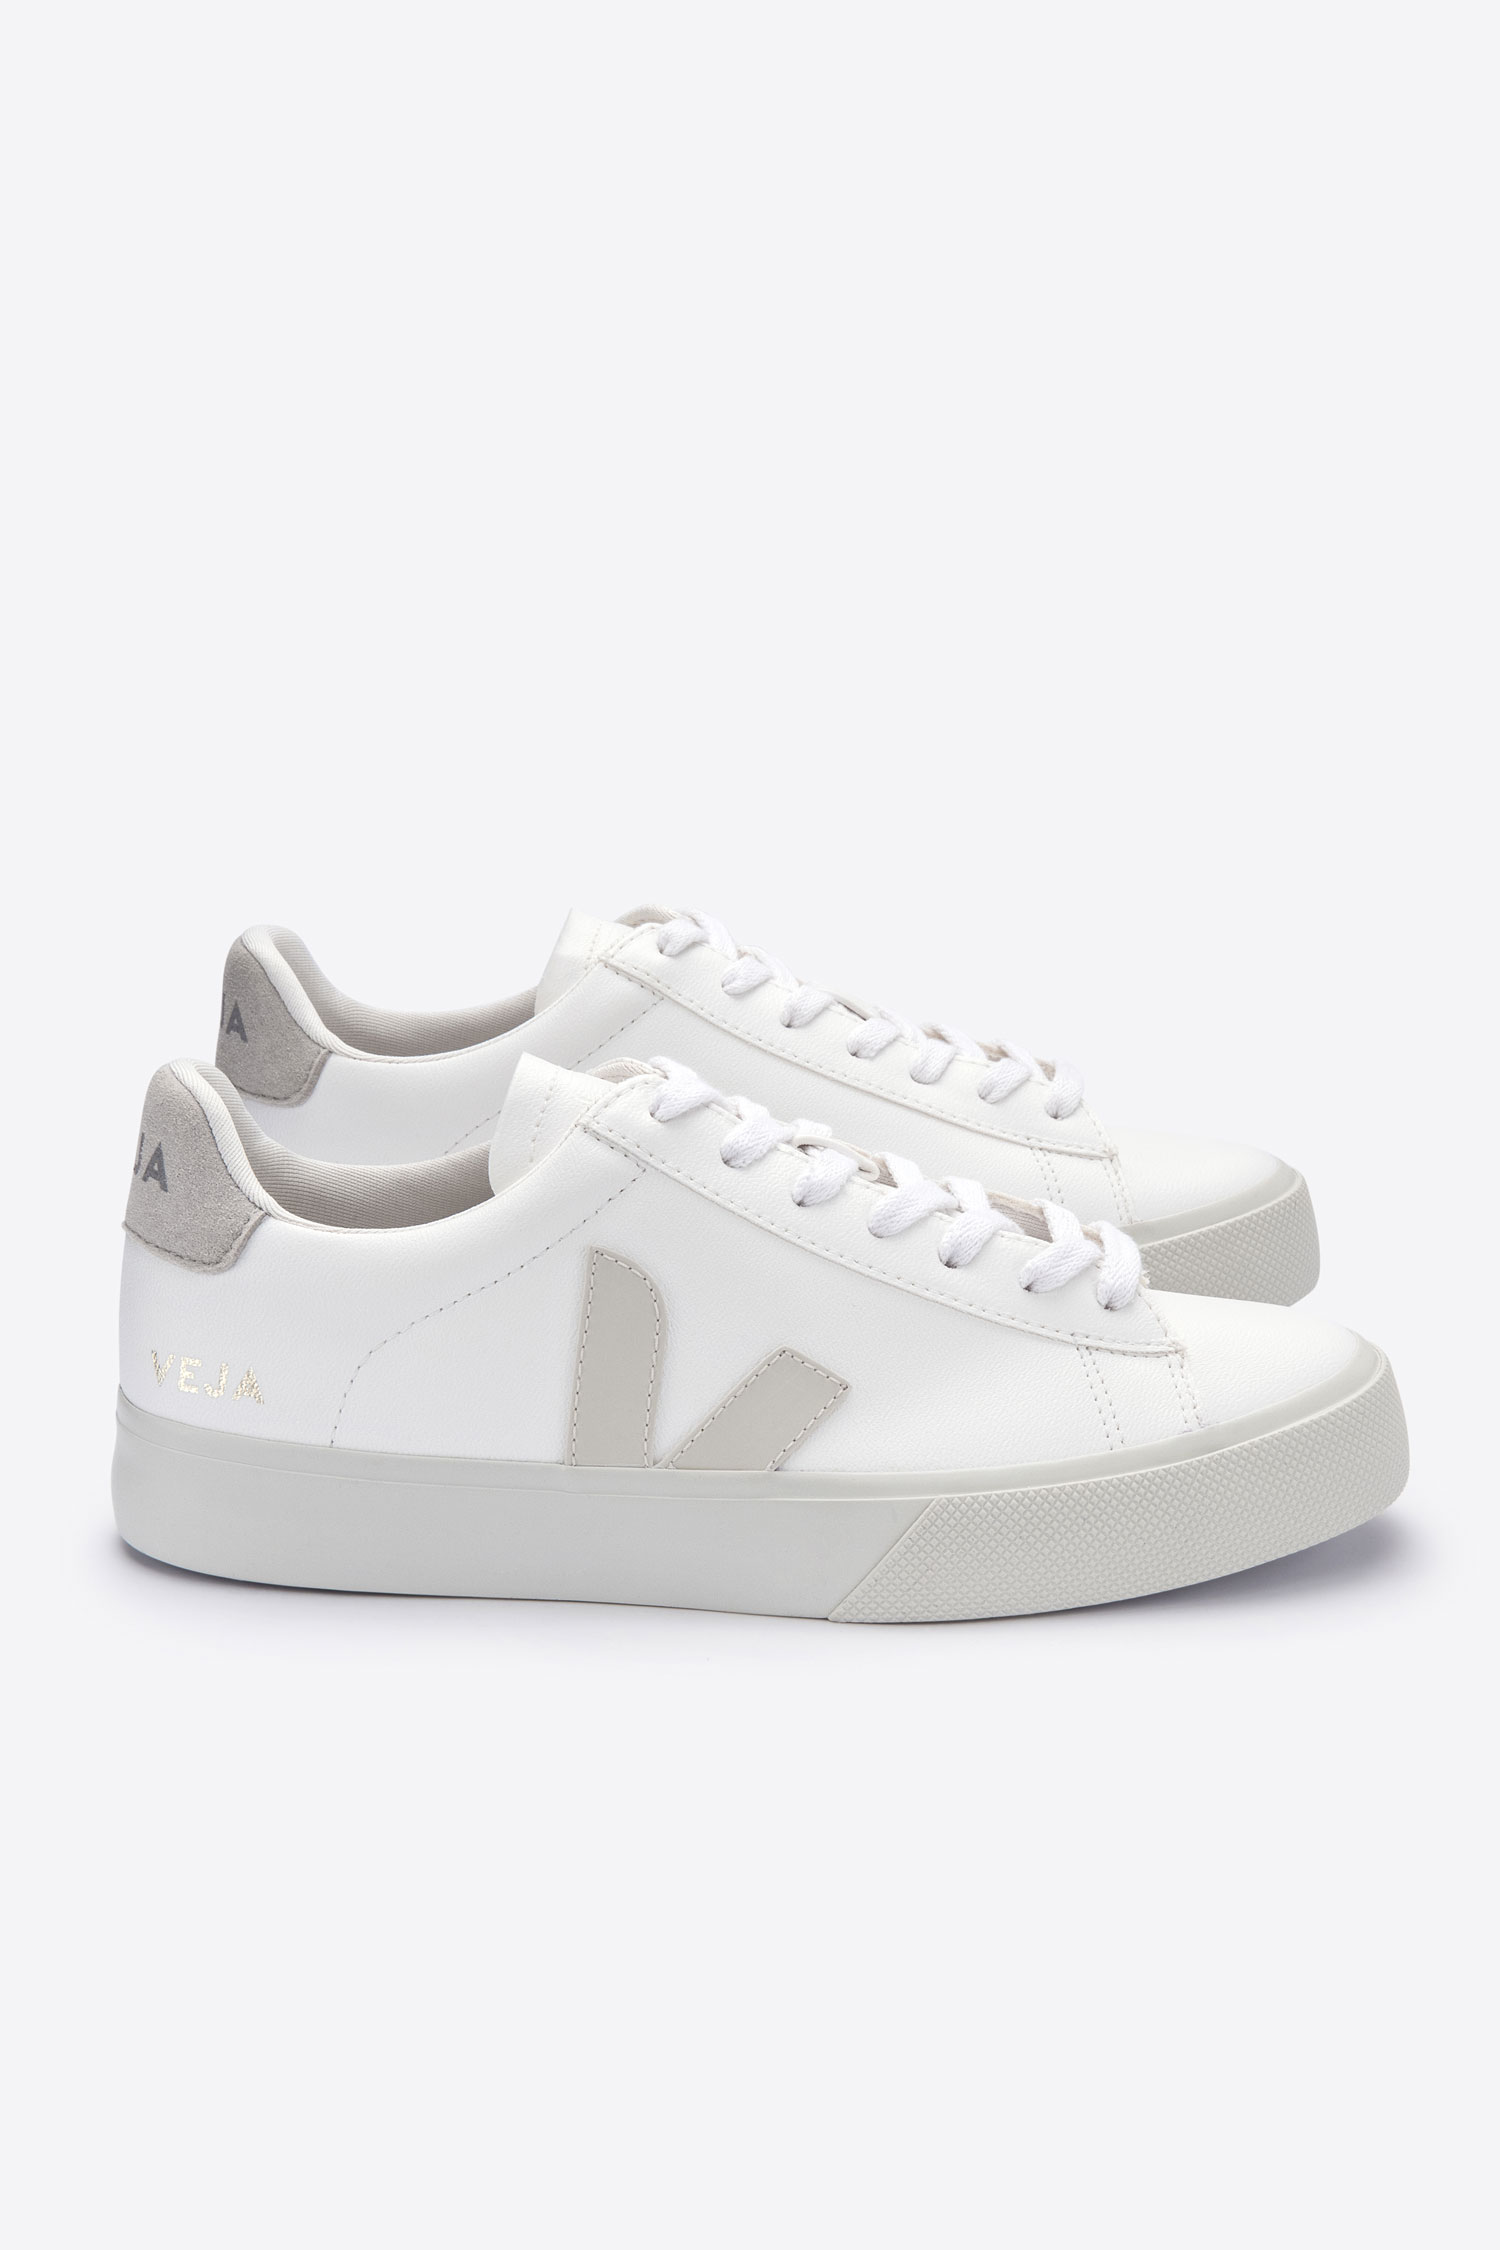 4399927dc7d Veja Launches Vegan 'Leather' Sneakers Made From Corn Waste